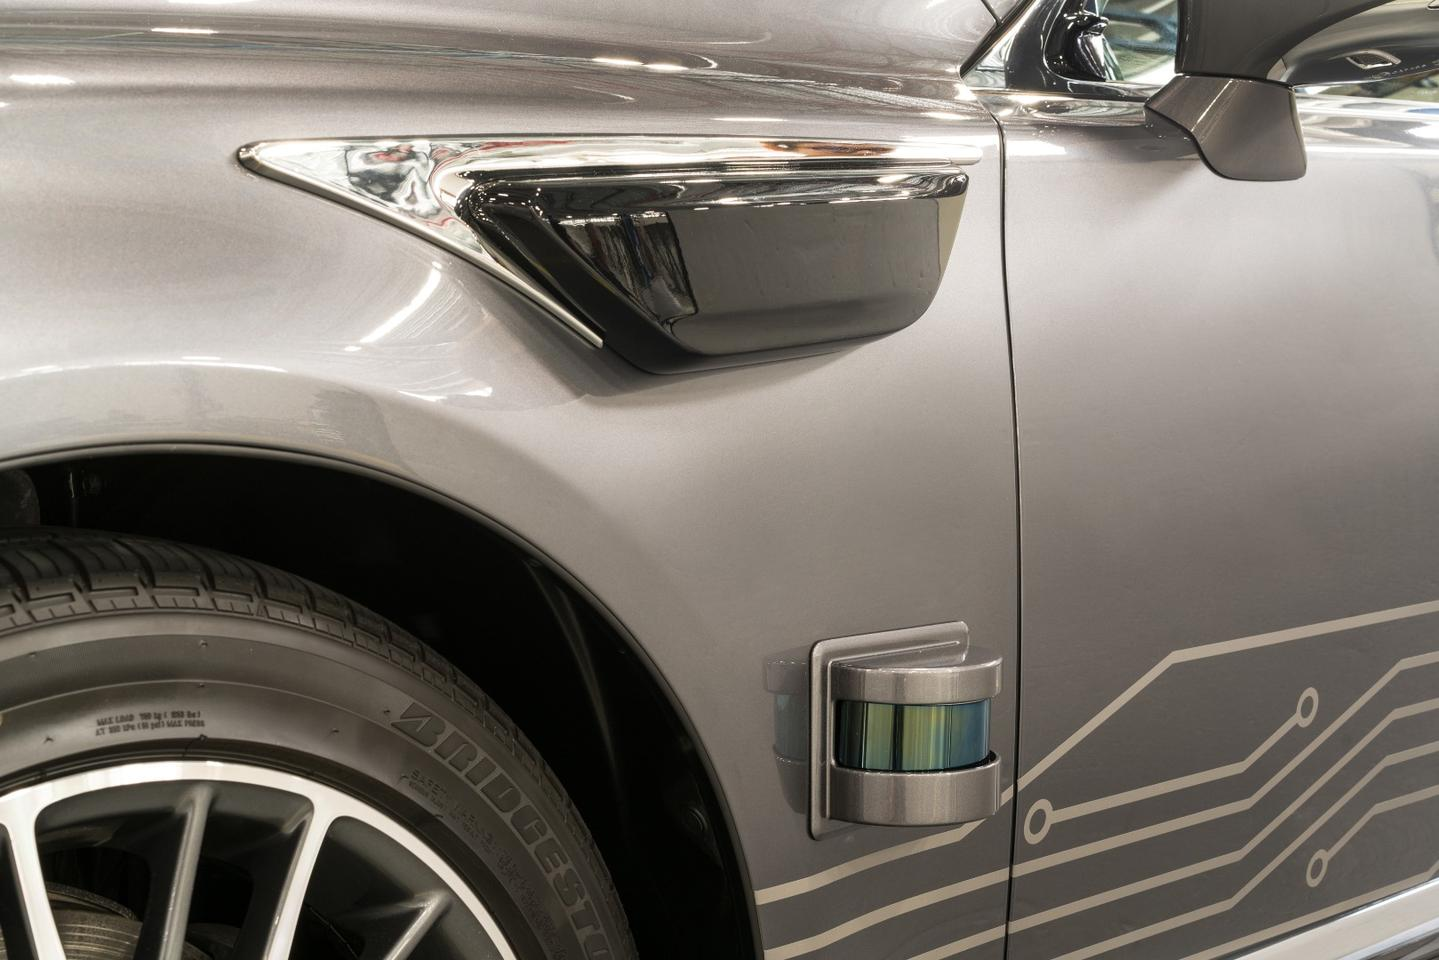 The long-range LIDAR sensors are augmented by shorter-range sensors positioned low on all sides of the Lexus testvehicle